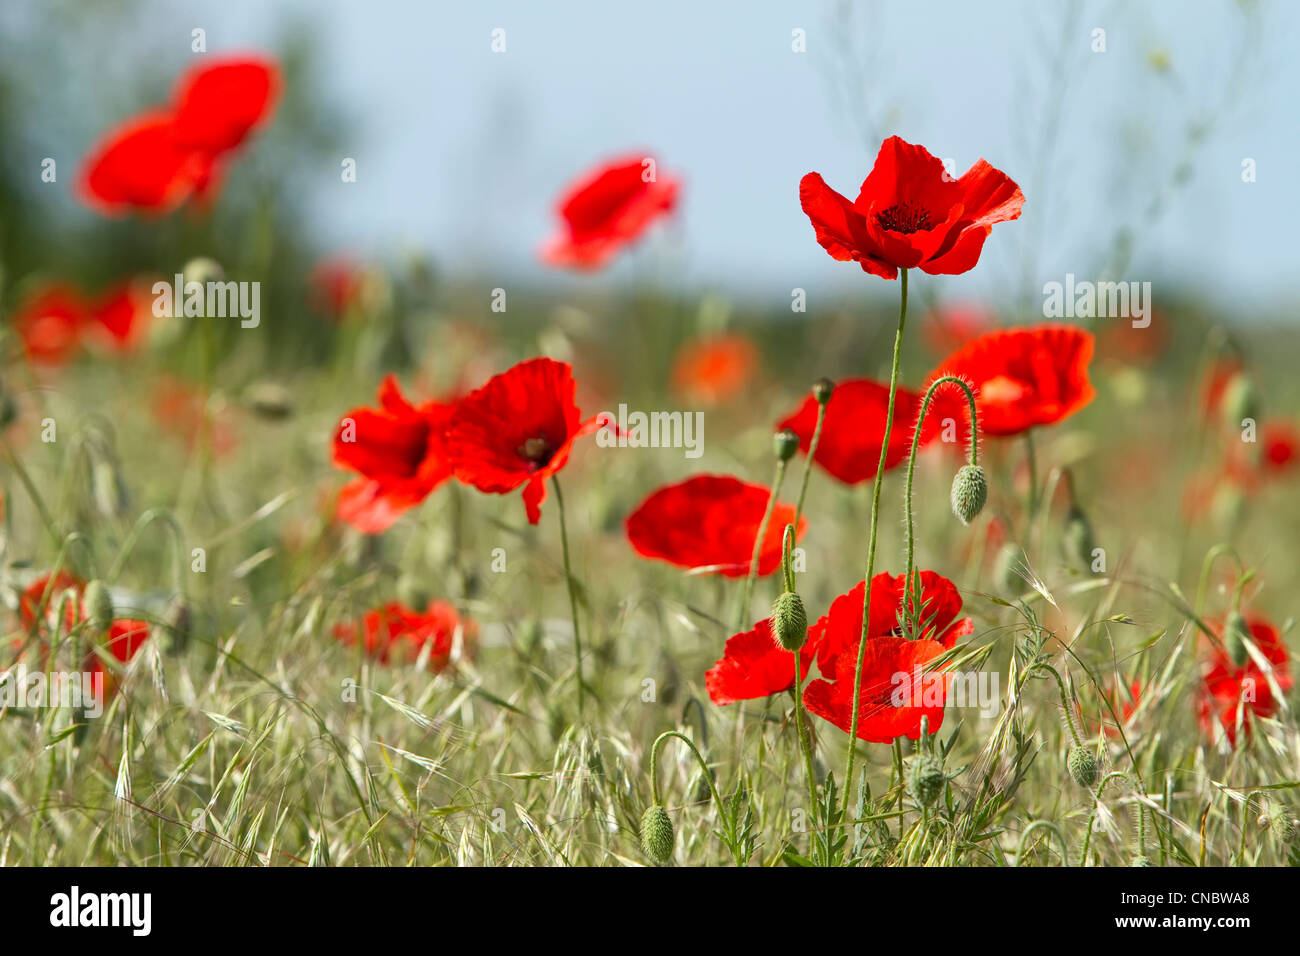 red poppies and green oat plant on the field - Stock Image